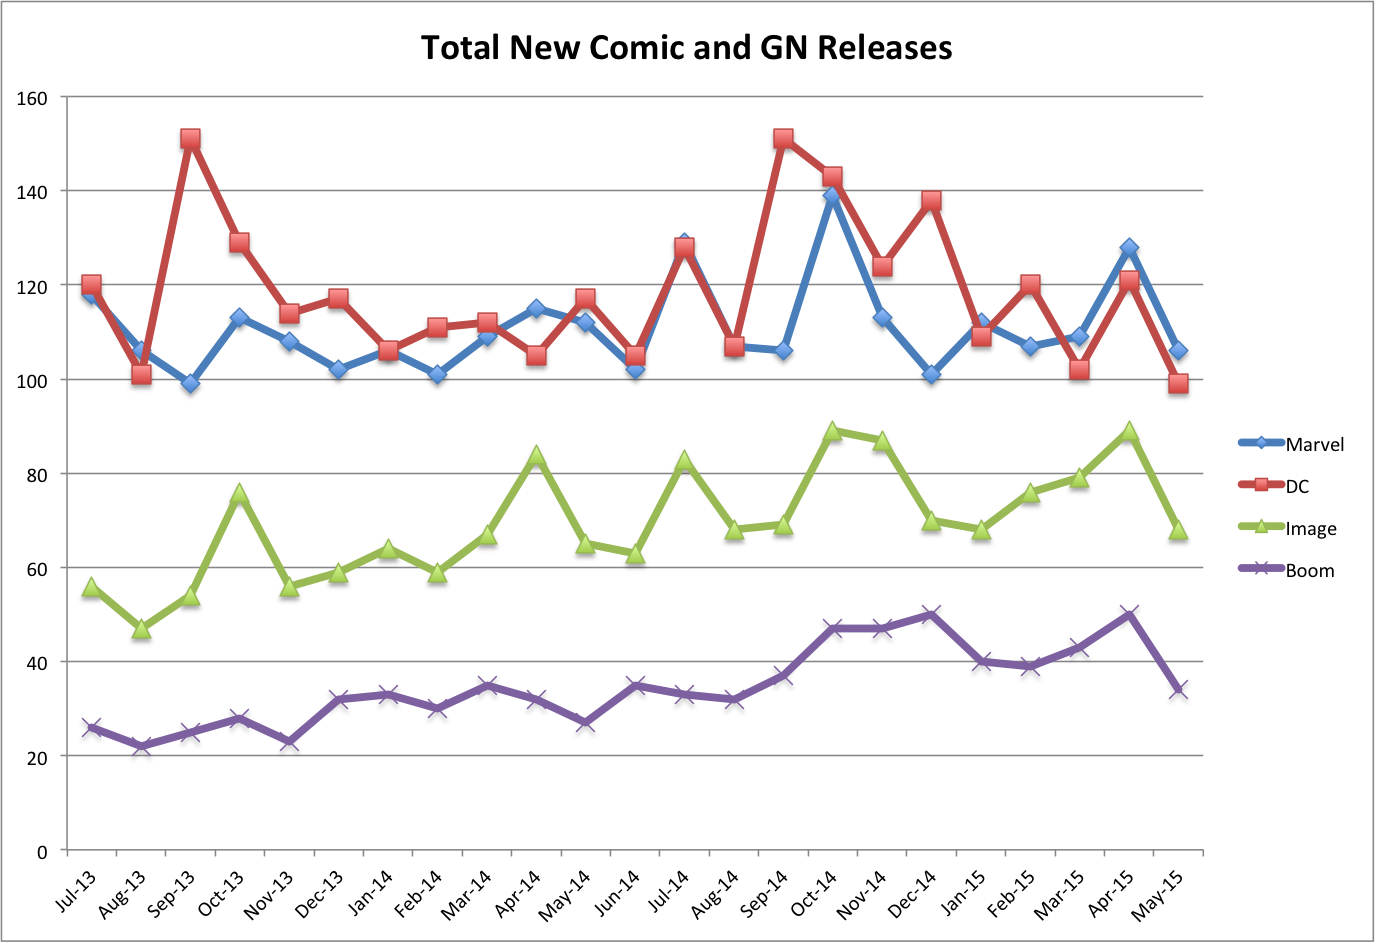 New Comics and GNs Per Publisher